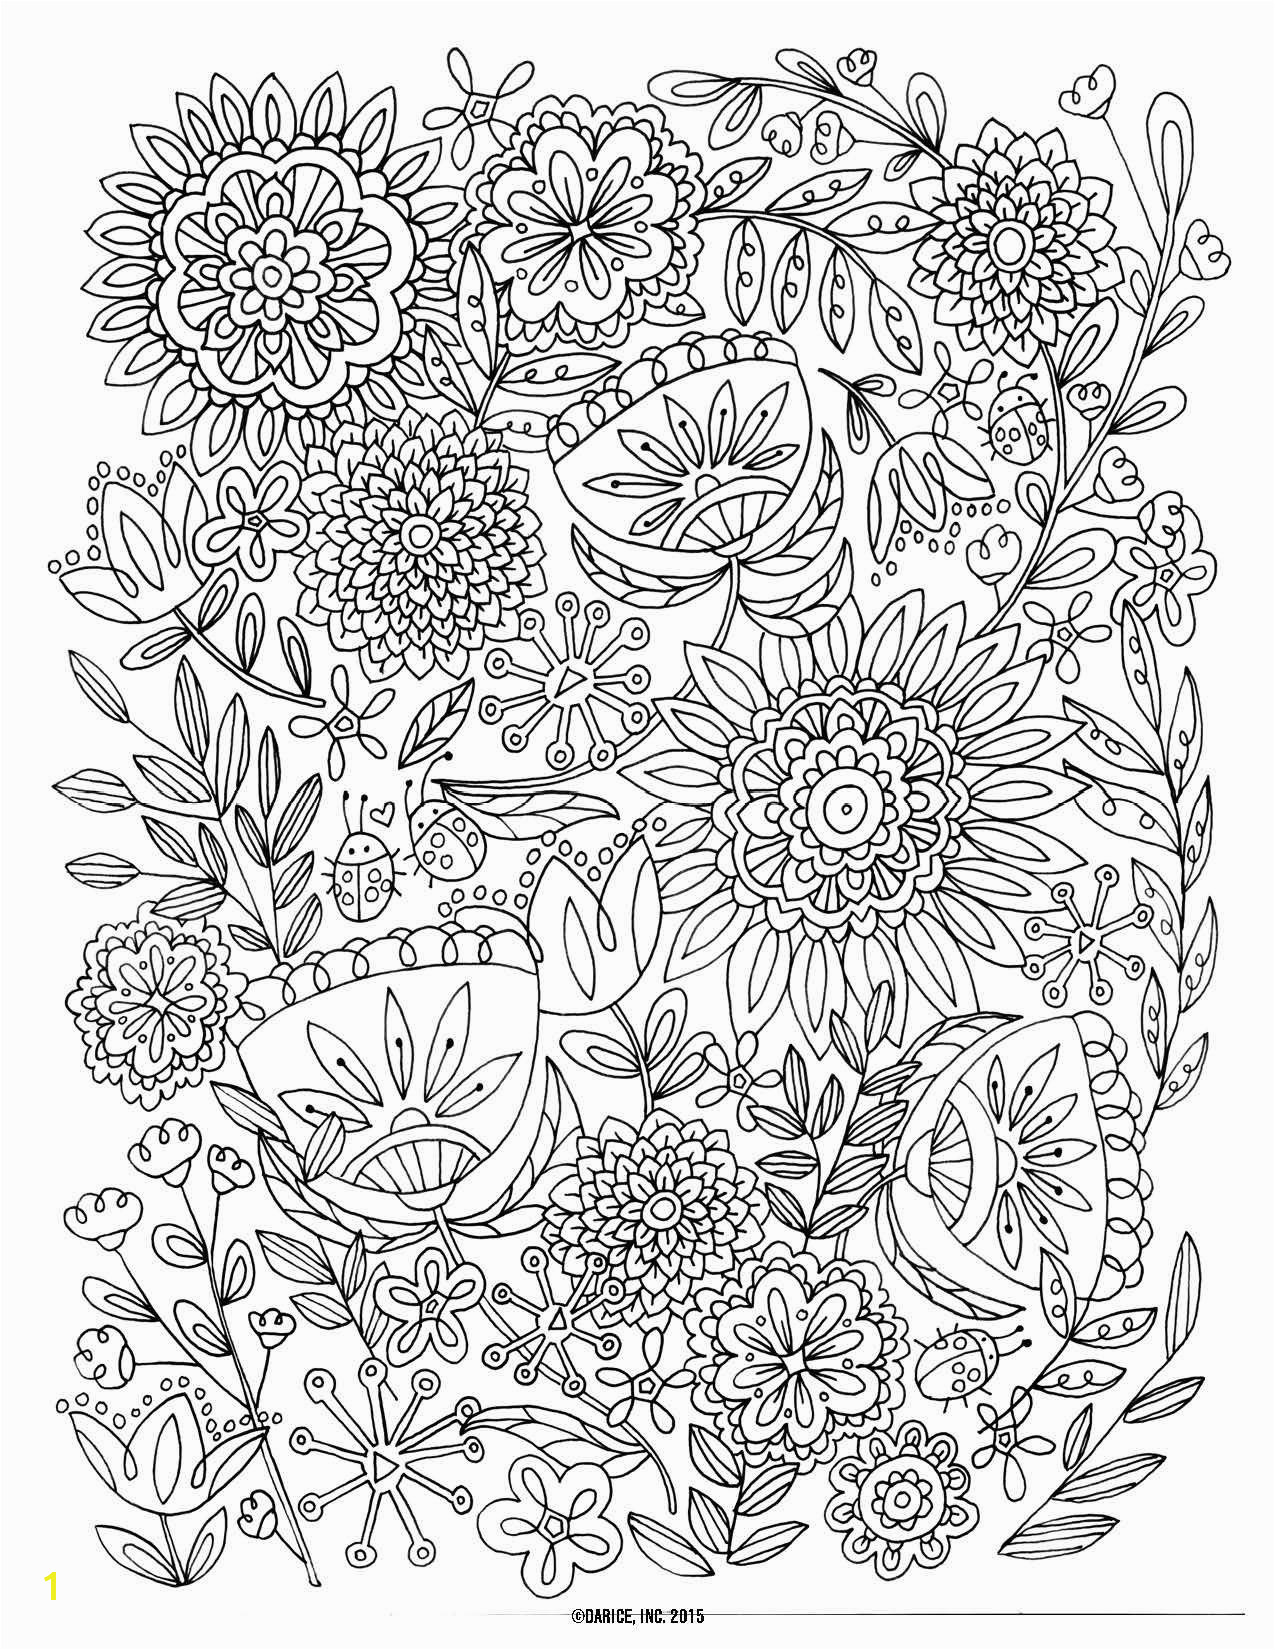 I have a SUPER fun Activity to do with these free coloring pages